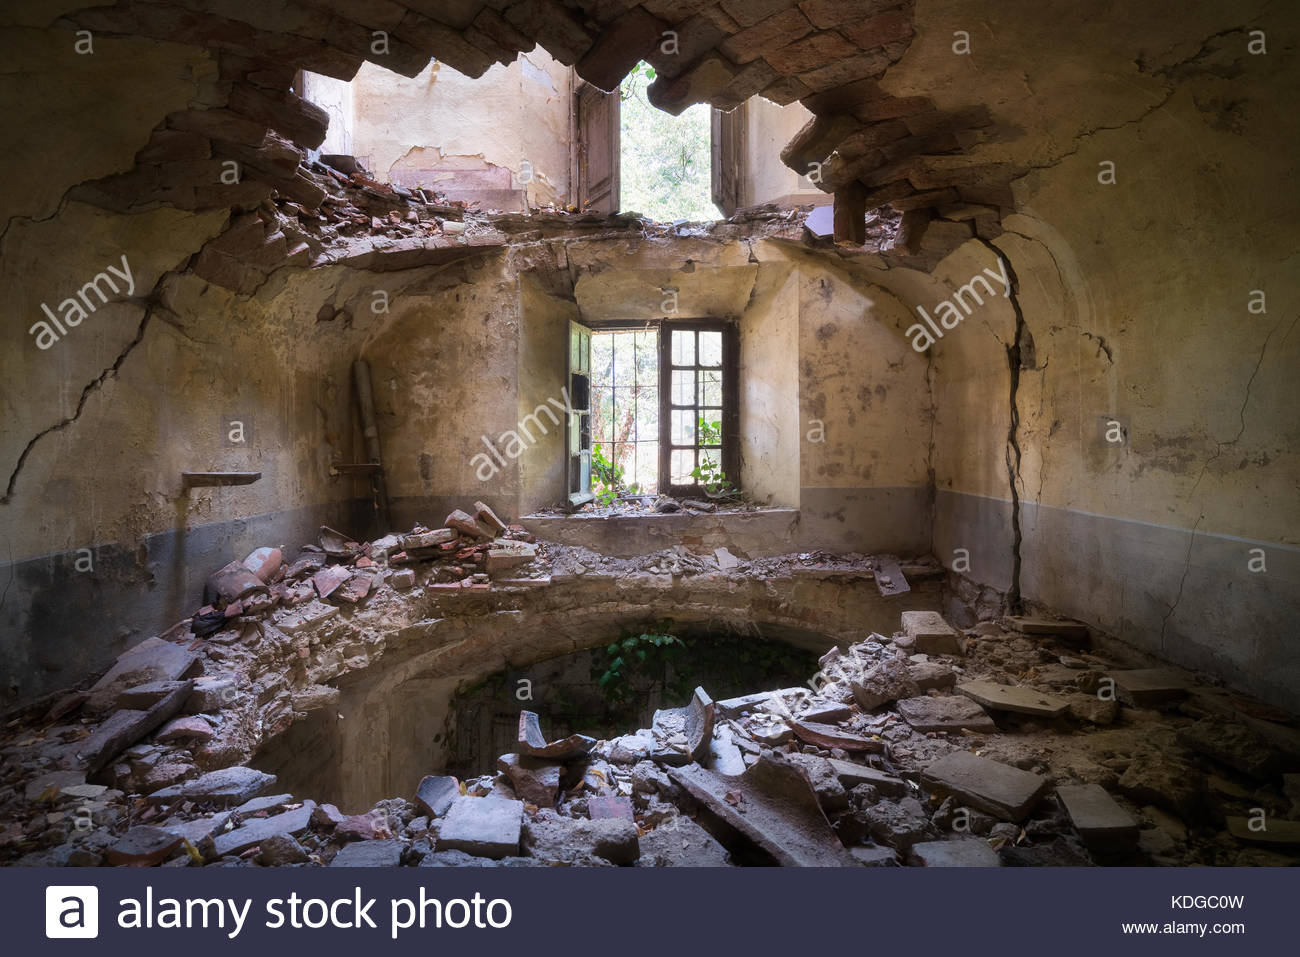 Old Castle In Decay Abandoned Stock Photos Old Castle In